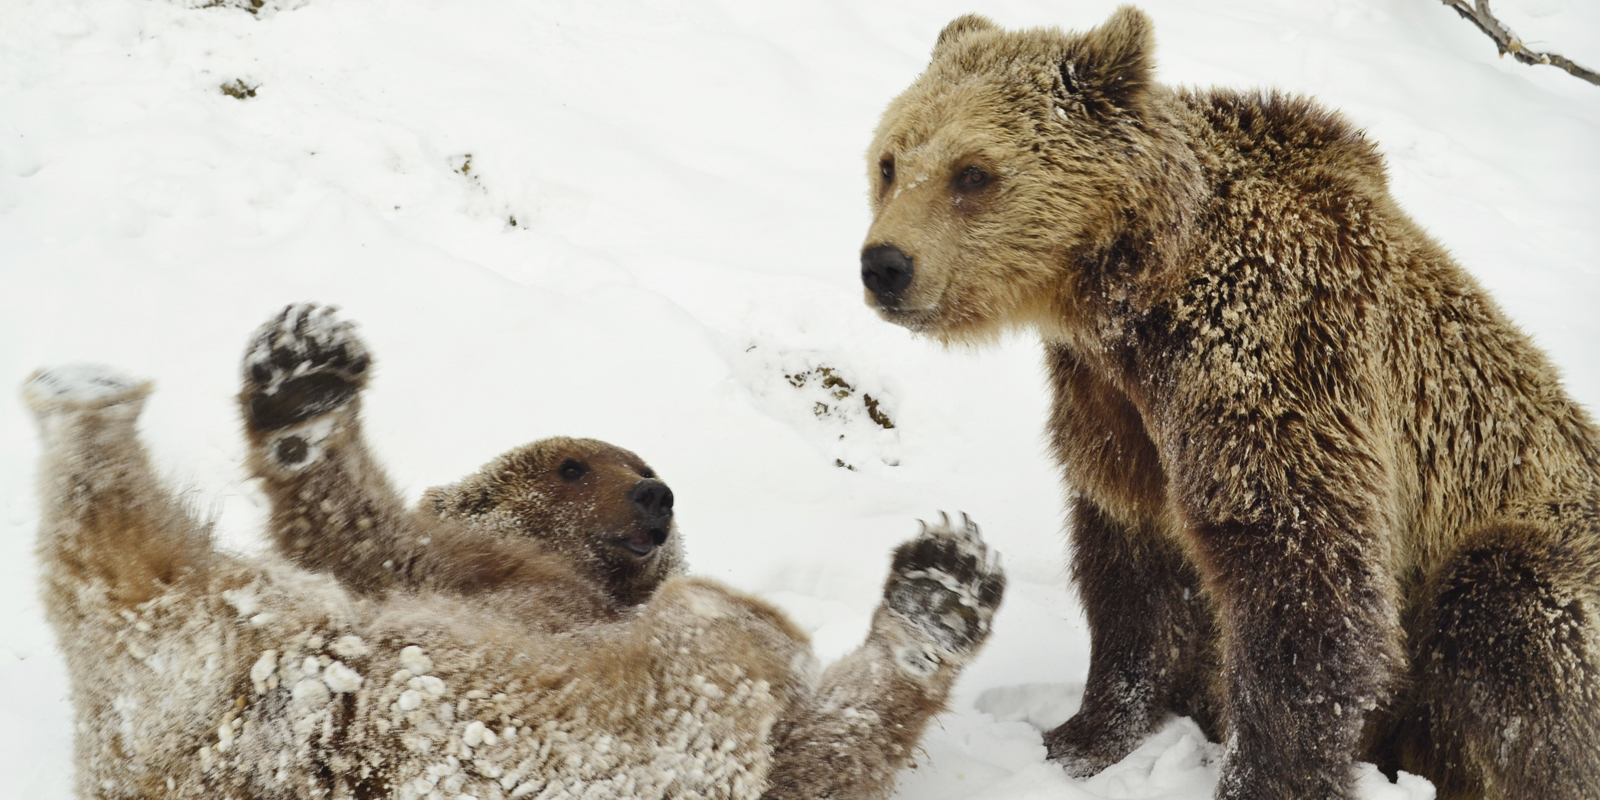 Bear sanctuary in Romania: brown bears enjoy playing in the snow